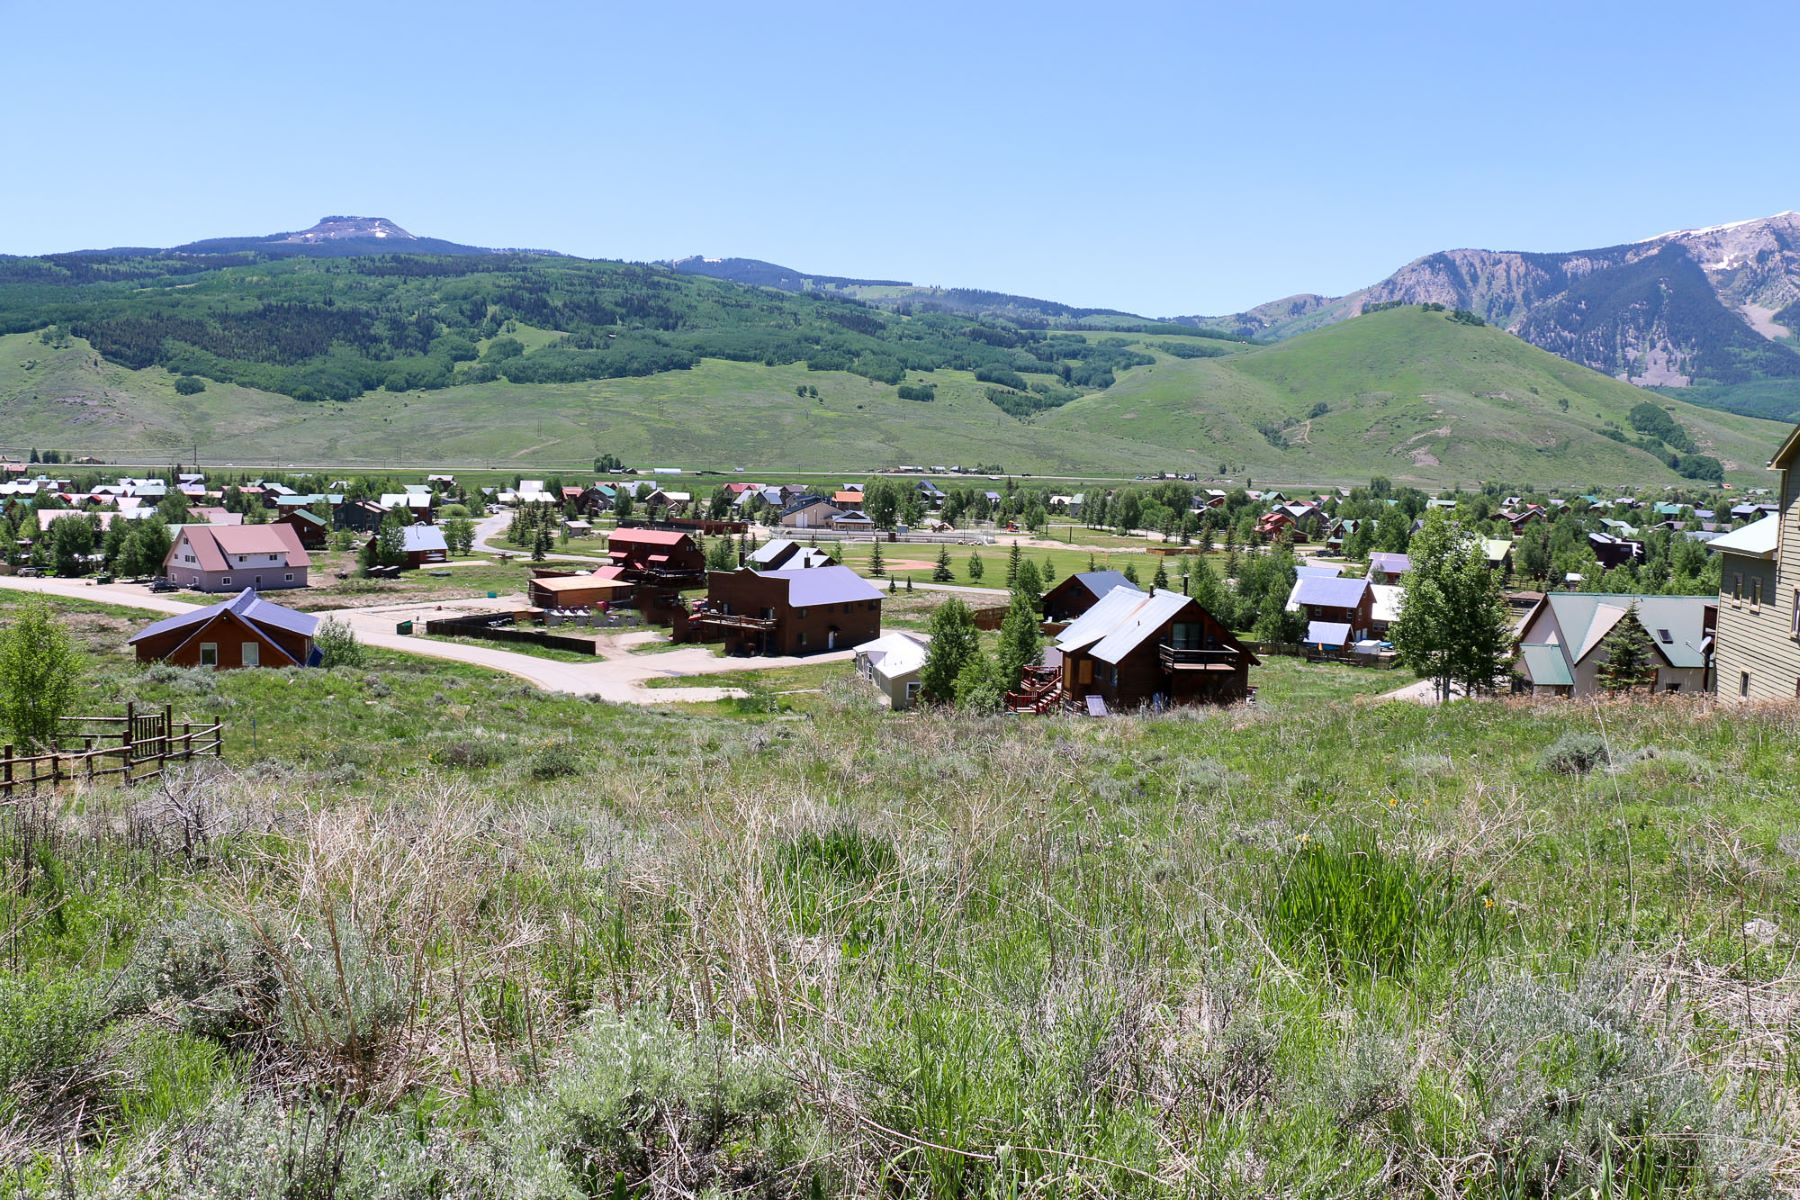 Land for Sale at Sunny CB South Parcel 196 Blackstock Drive Crested Butte, Colorado 81224 United States